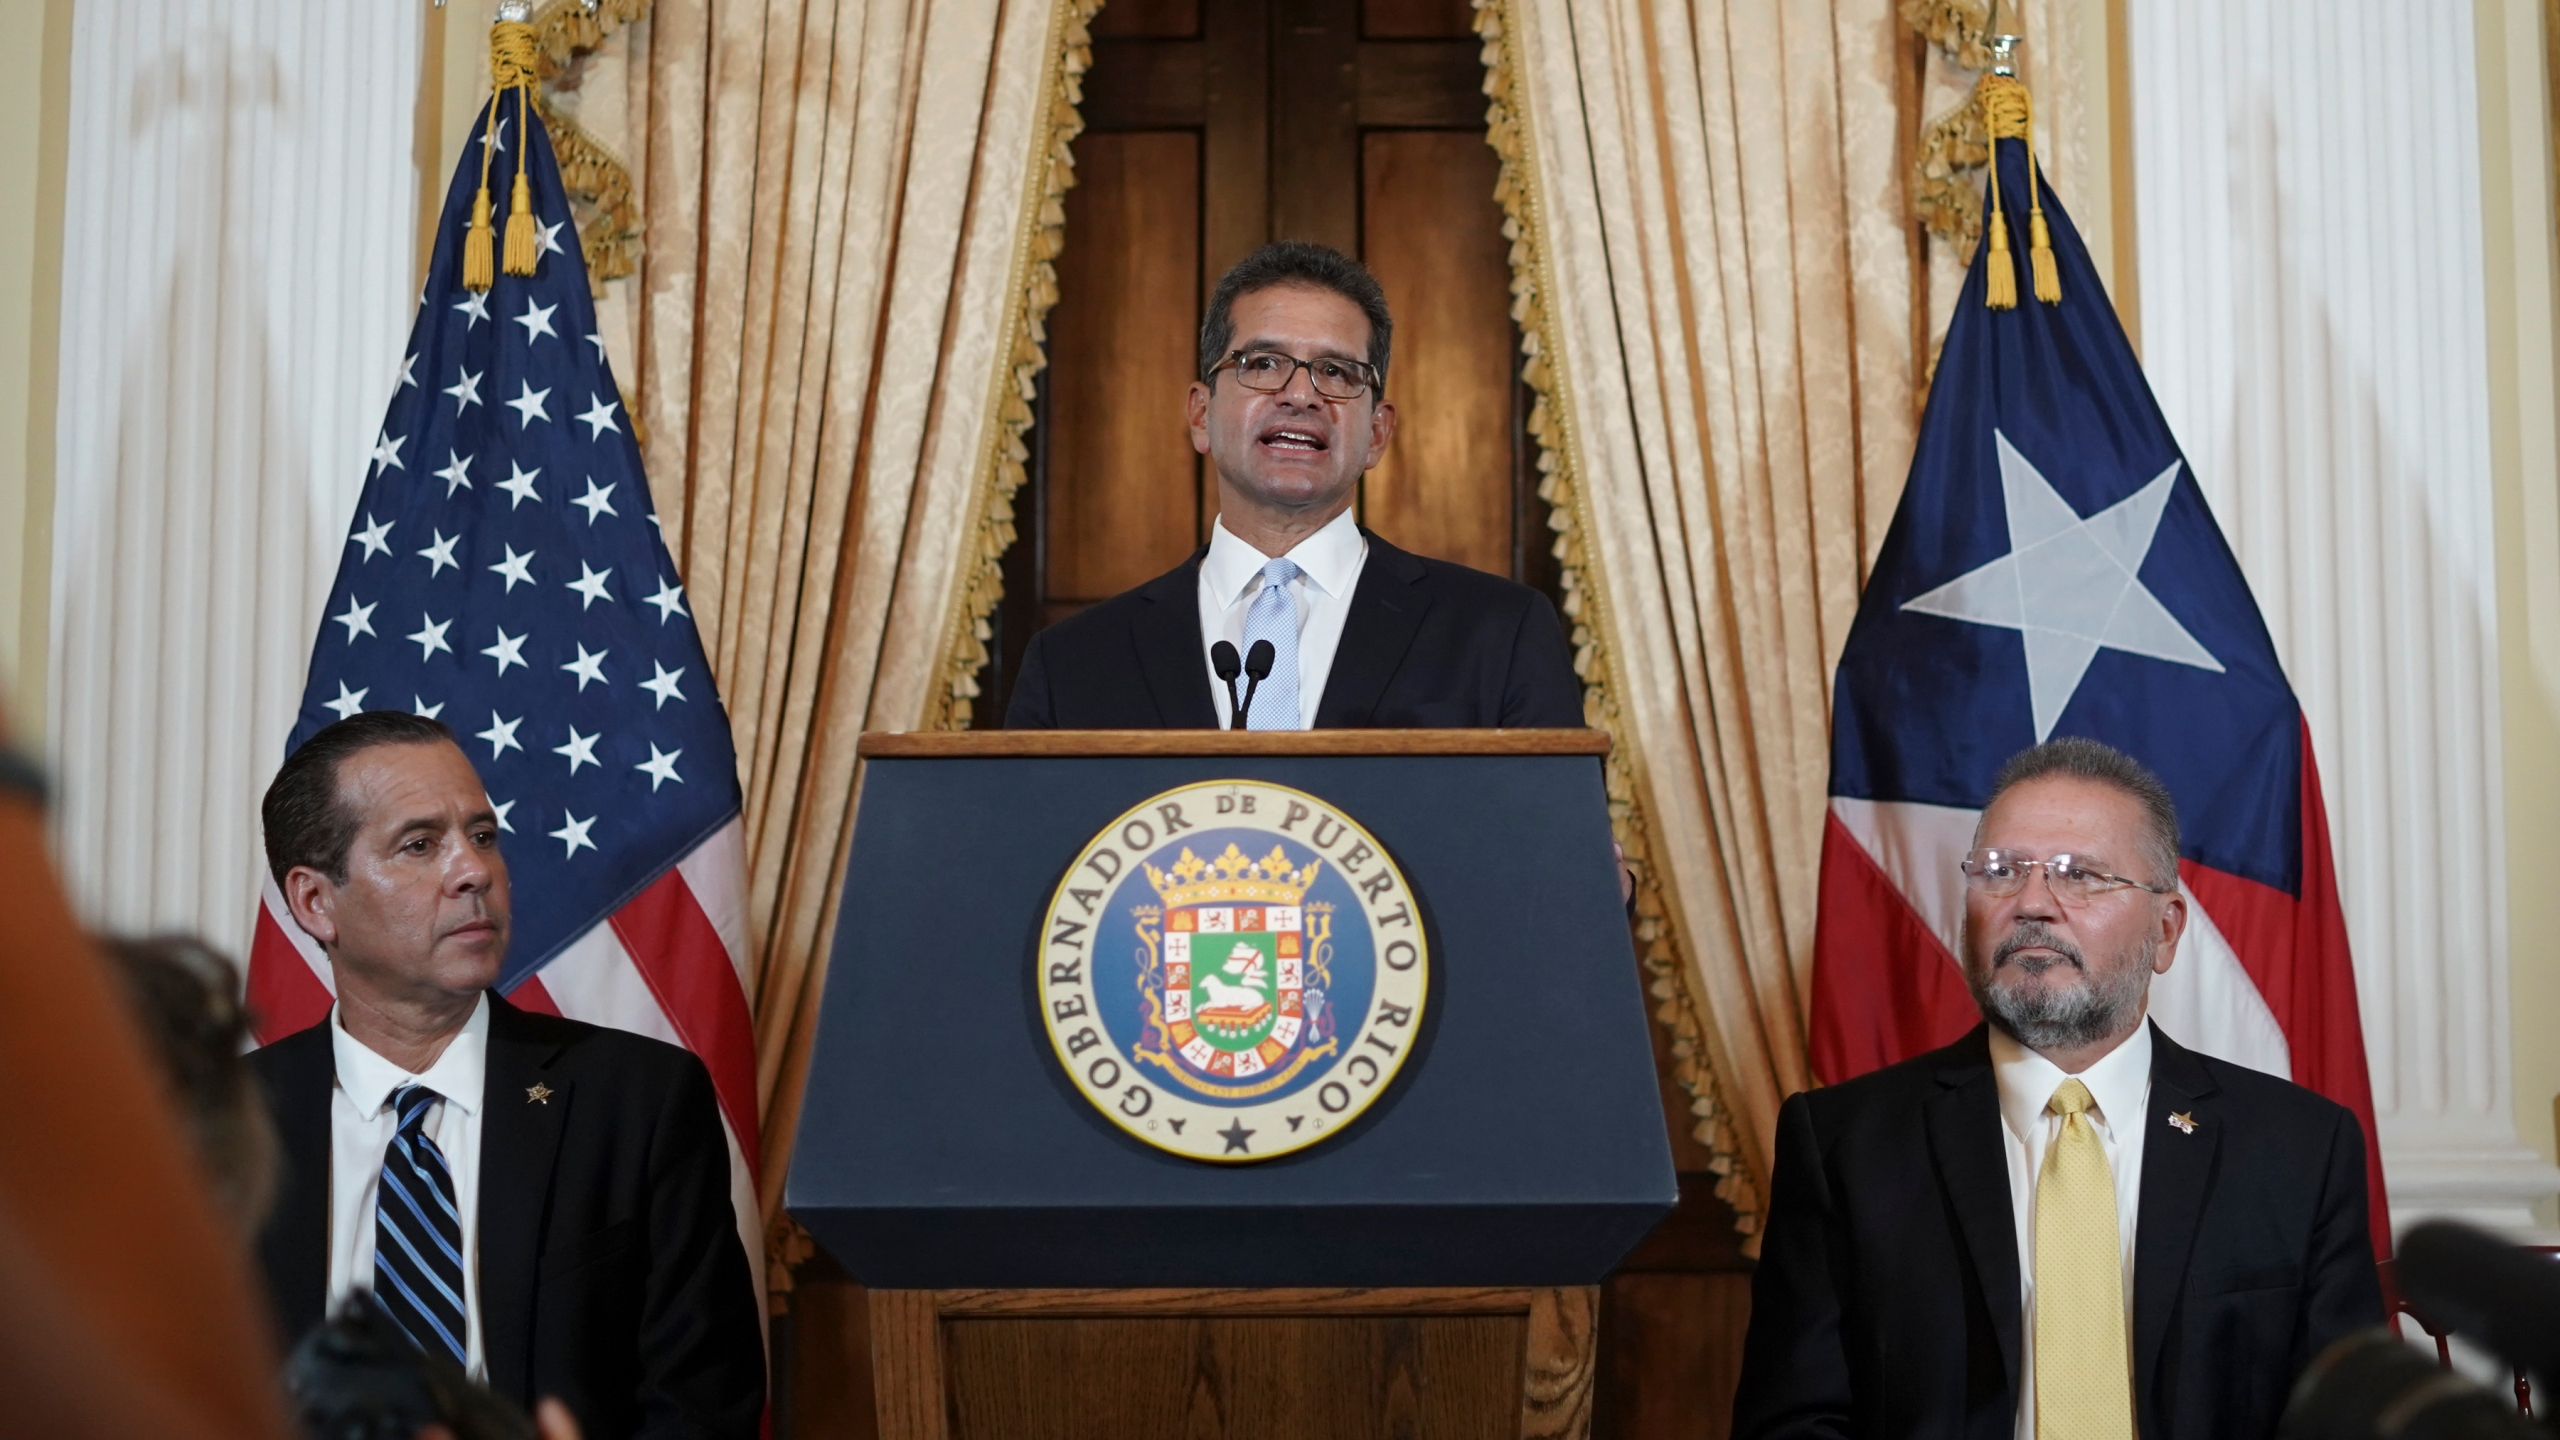 Pedro Pierluisi holds a press conference after being sworn in as governor of Puerto Rico in San Juan, Puerto Rico on, Aug. 2, 2019. (Credit: ERIC ROJAS/AFP/Getty Images)